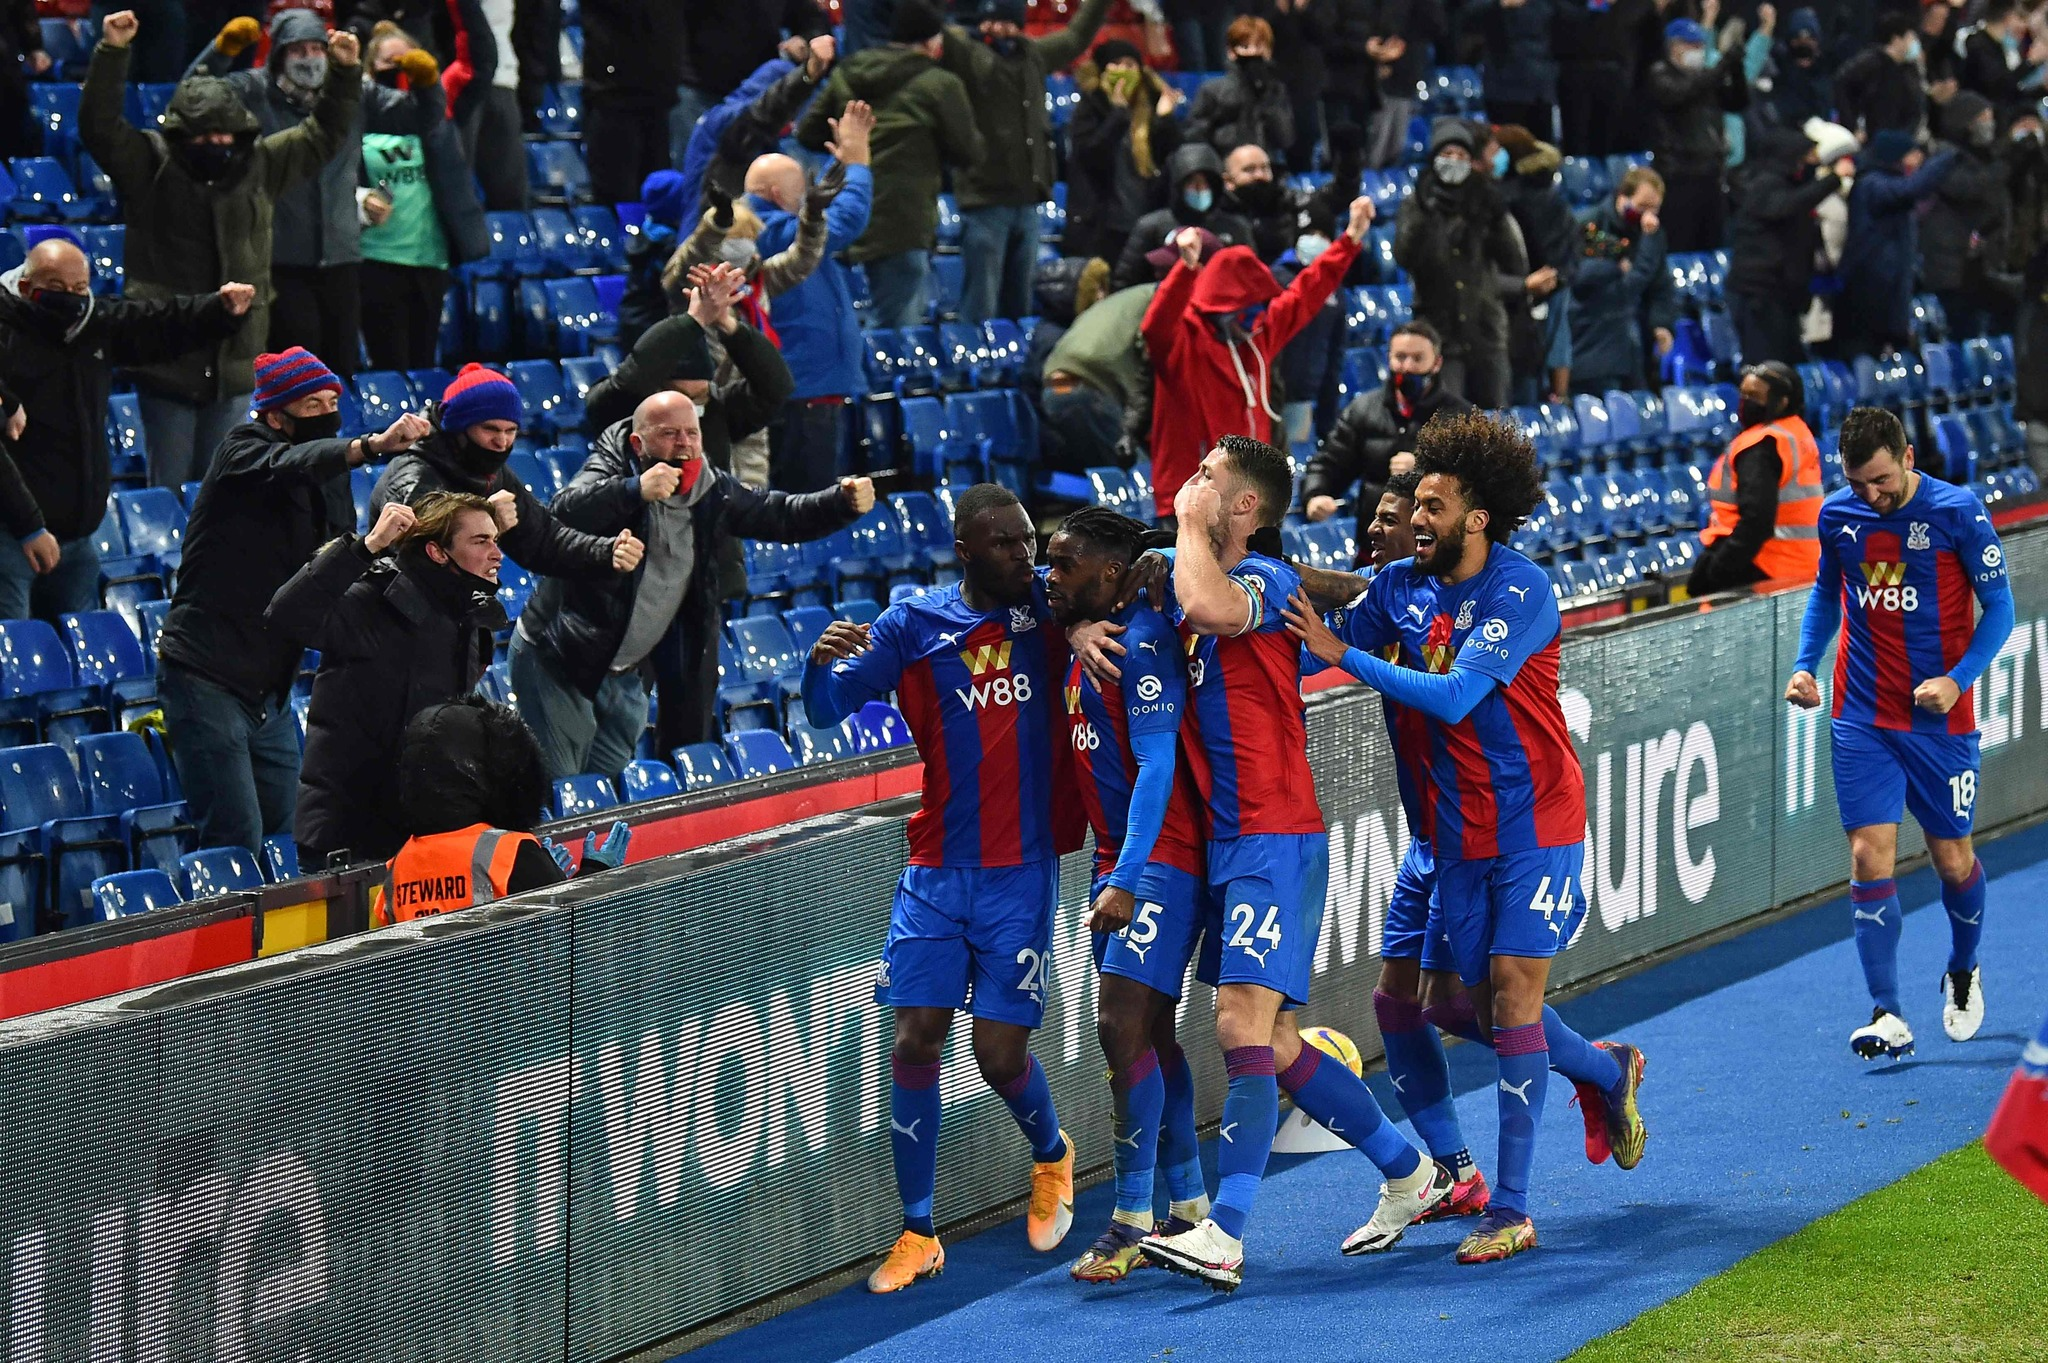 Crystal Palaces German midfielder Jeffrey Schlupp (C right) celebrates after scoring the equalising goal in front of the home supporters during the English Premier League football match between Crystal Palace and lt;HIT gt;Tottenham lt;/HIT gt; Hotspur at Selhurst Park in south London on December 13, 2020. (Photo by Glyn KIRK / POOL / AFP) / RESTRICTED TO EDITORIAL USE. No use with unauthorized audio, video, data, fixture lists, club/league logos or live services. Online in-match use limited to 120 images. An additional 40 images may be used in extra time. No video emulation. Social media in-match use limited to 120 images. An additional 40 images may be used in extra time. No use in betting publications, games or single club/league/player publications. /